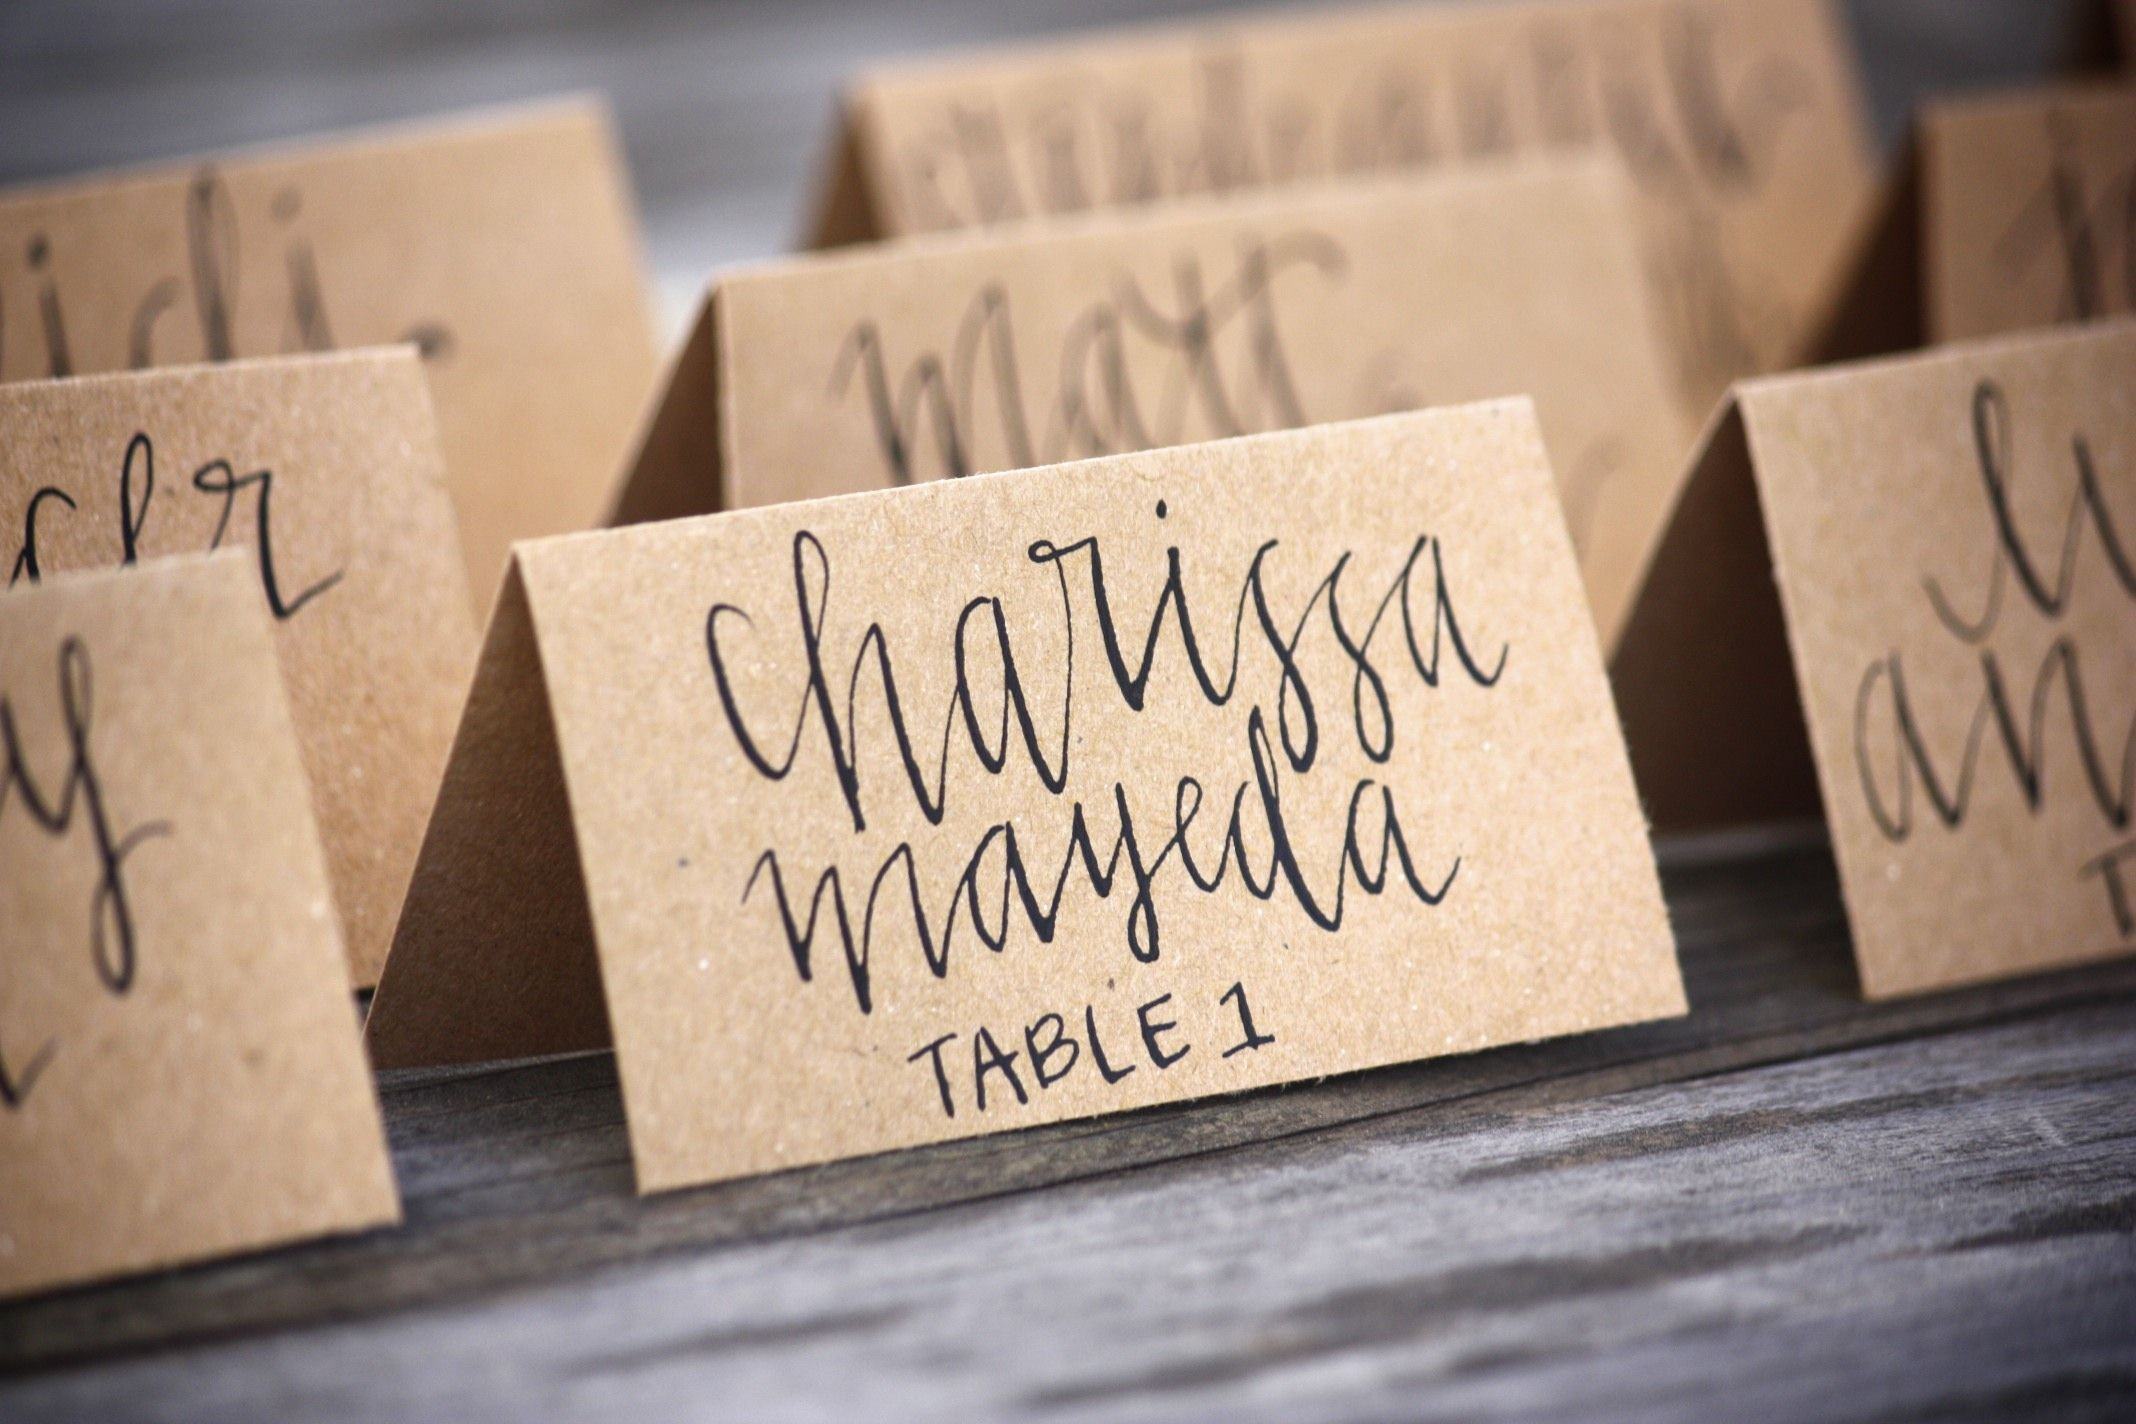 Charming Dinner Party Name Ideas Part - 6: Wedding Place Cards - Tent Fold - Escort Card - Black Calligraphy With  Kraft Paper - Bride Groom - Dinner Party - Name Tag